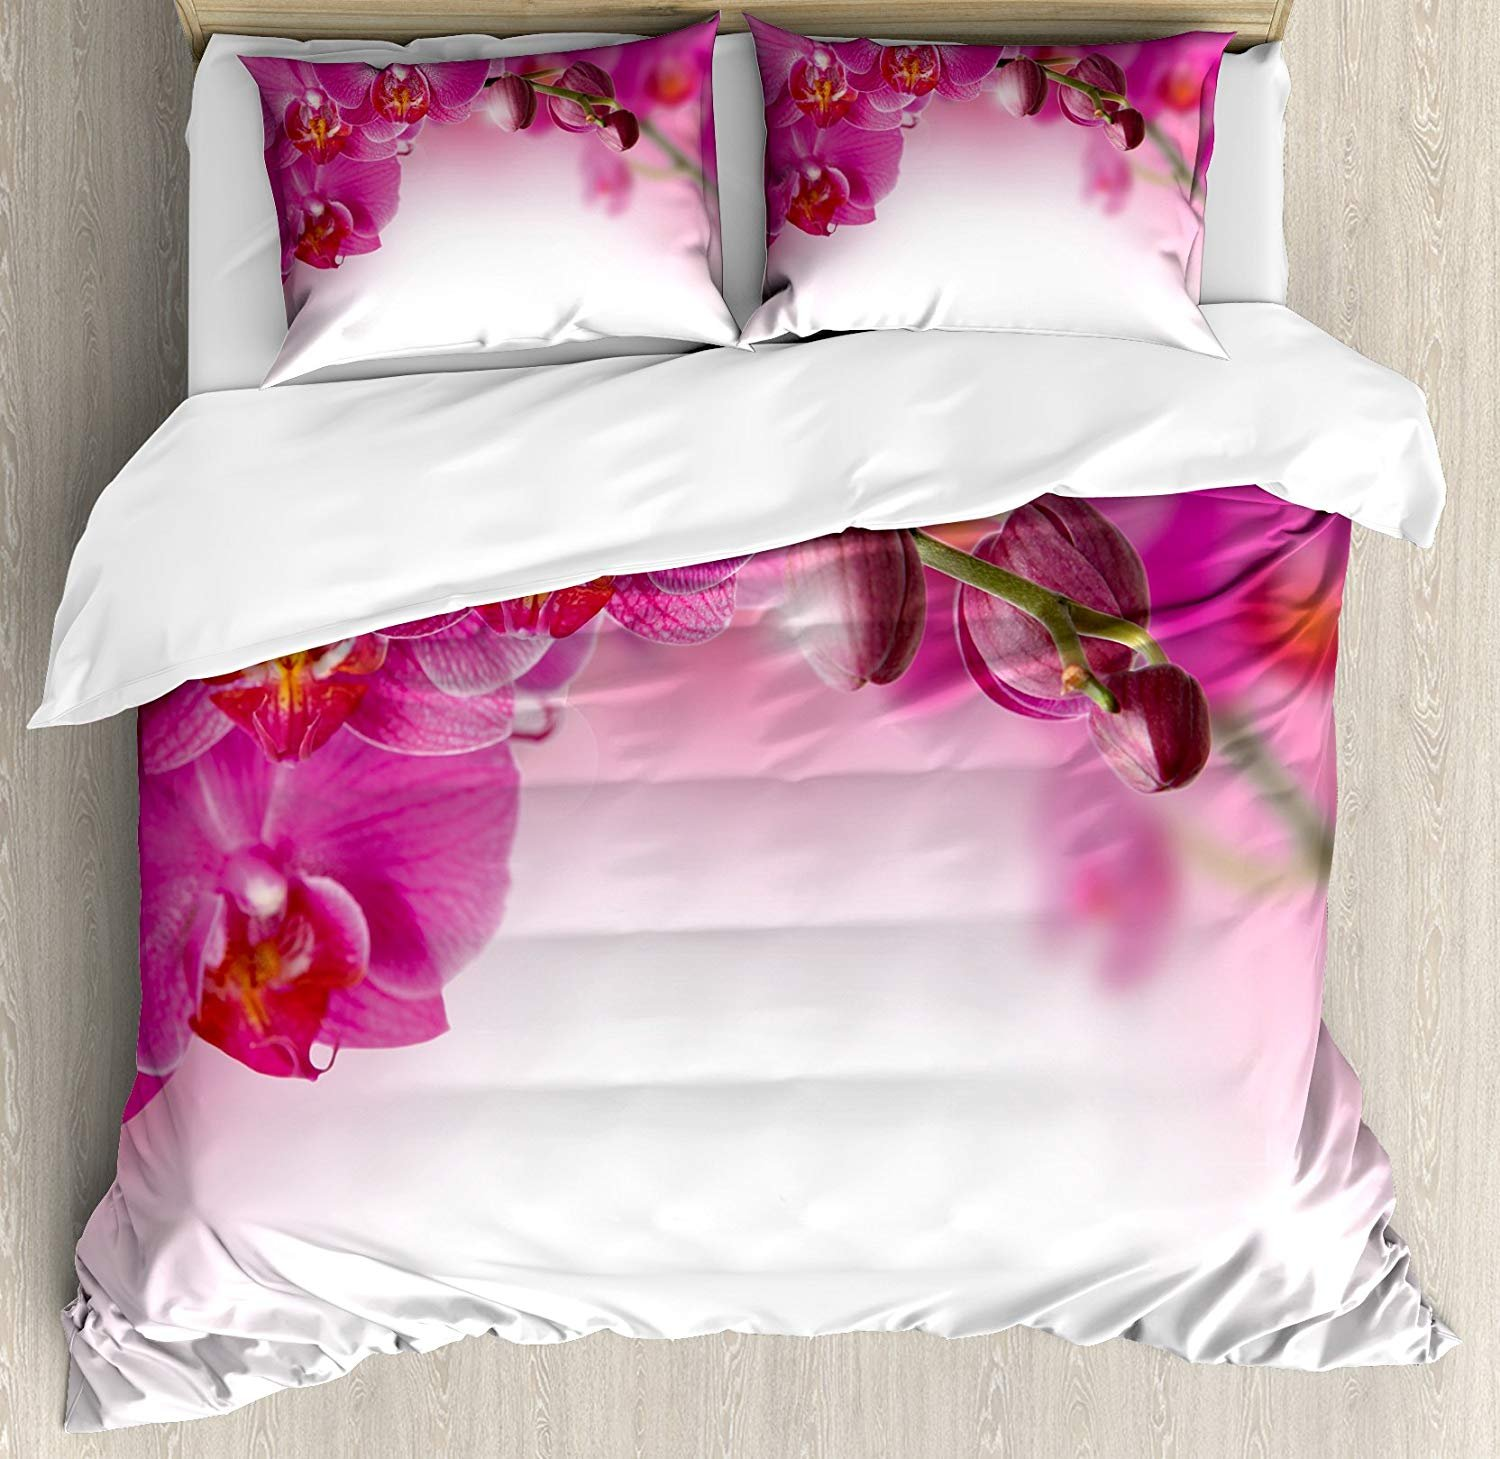 Spa Twin Duvet Cover Sets 4 Piece Bedding Set Bedspread with 2 Pillow Sham, Flat Sheet for Adult/Kids/Teens, Blossoming Orchid Branch Exotic Nature with Feng Shui Elements Spa Zen Garden Botany